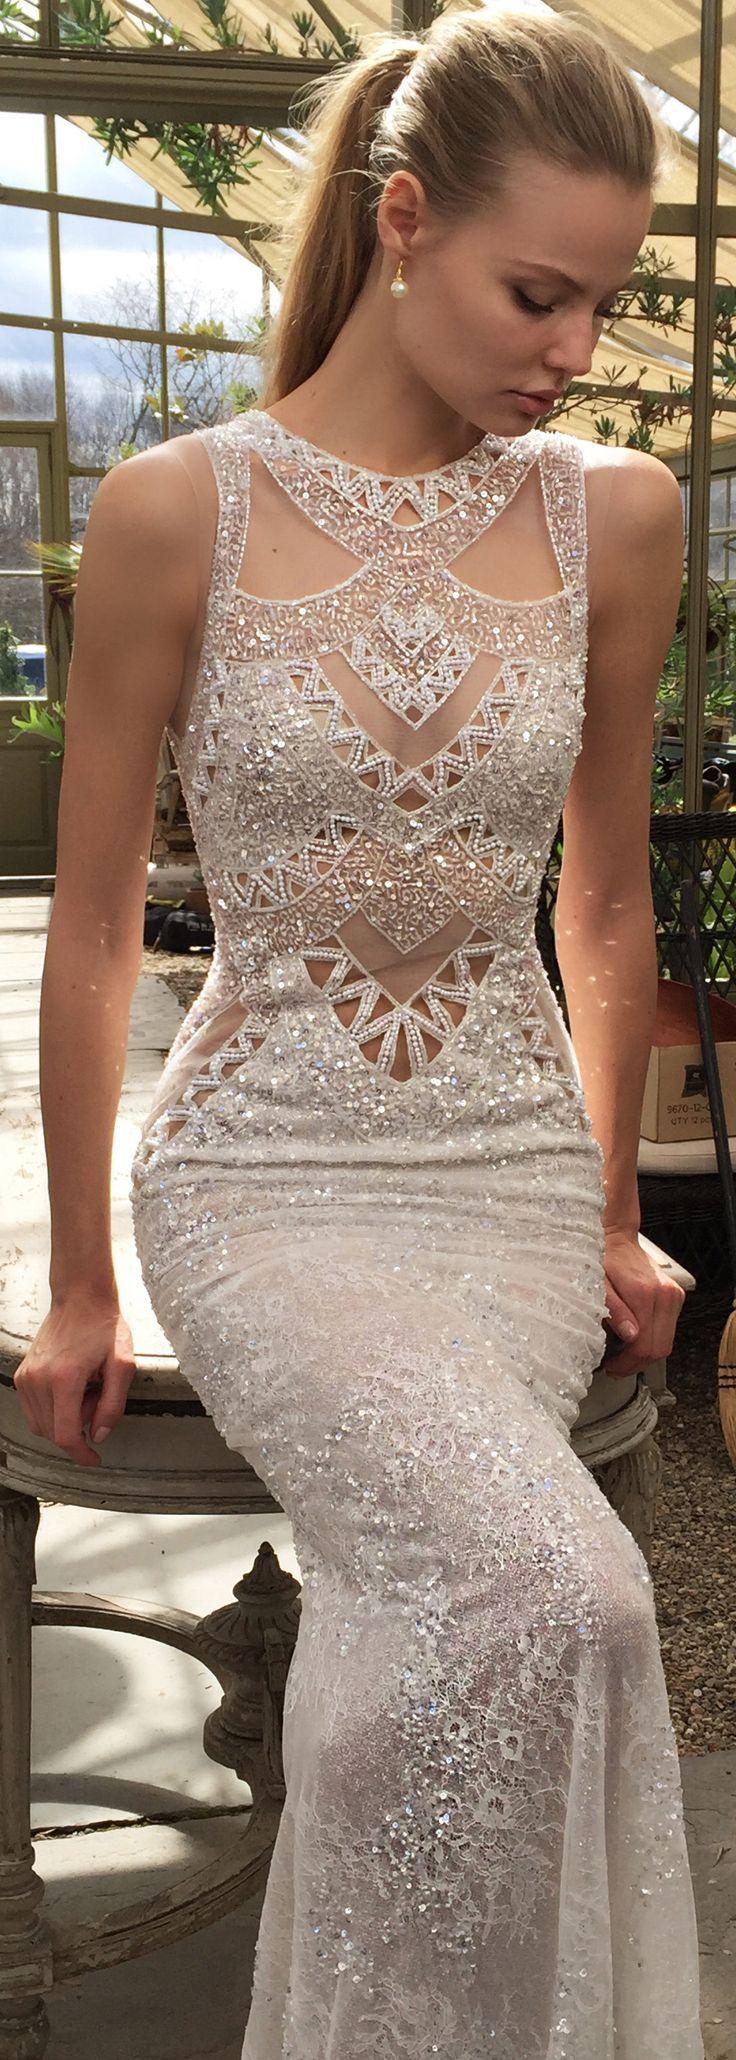 The geometric detailing on this @bertabridal wedding dress gives it such a modern feel.